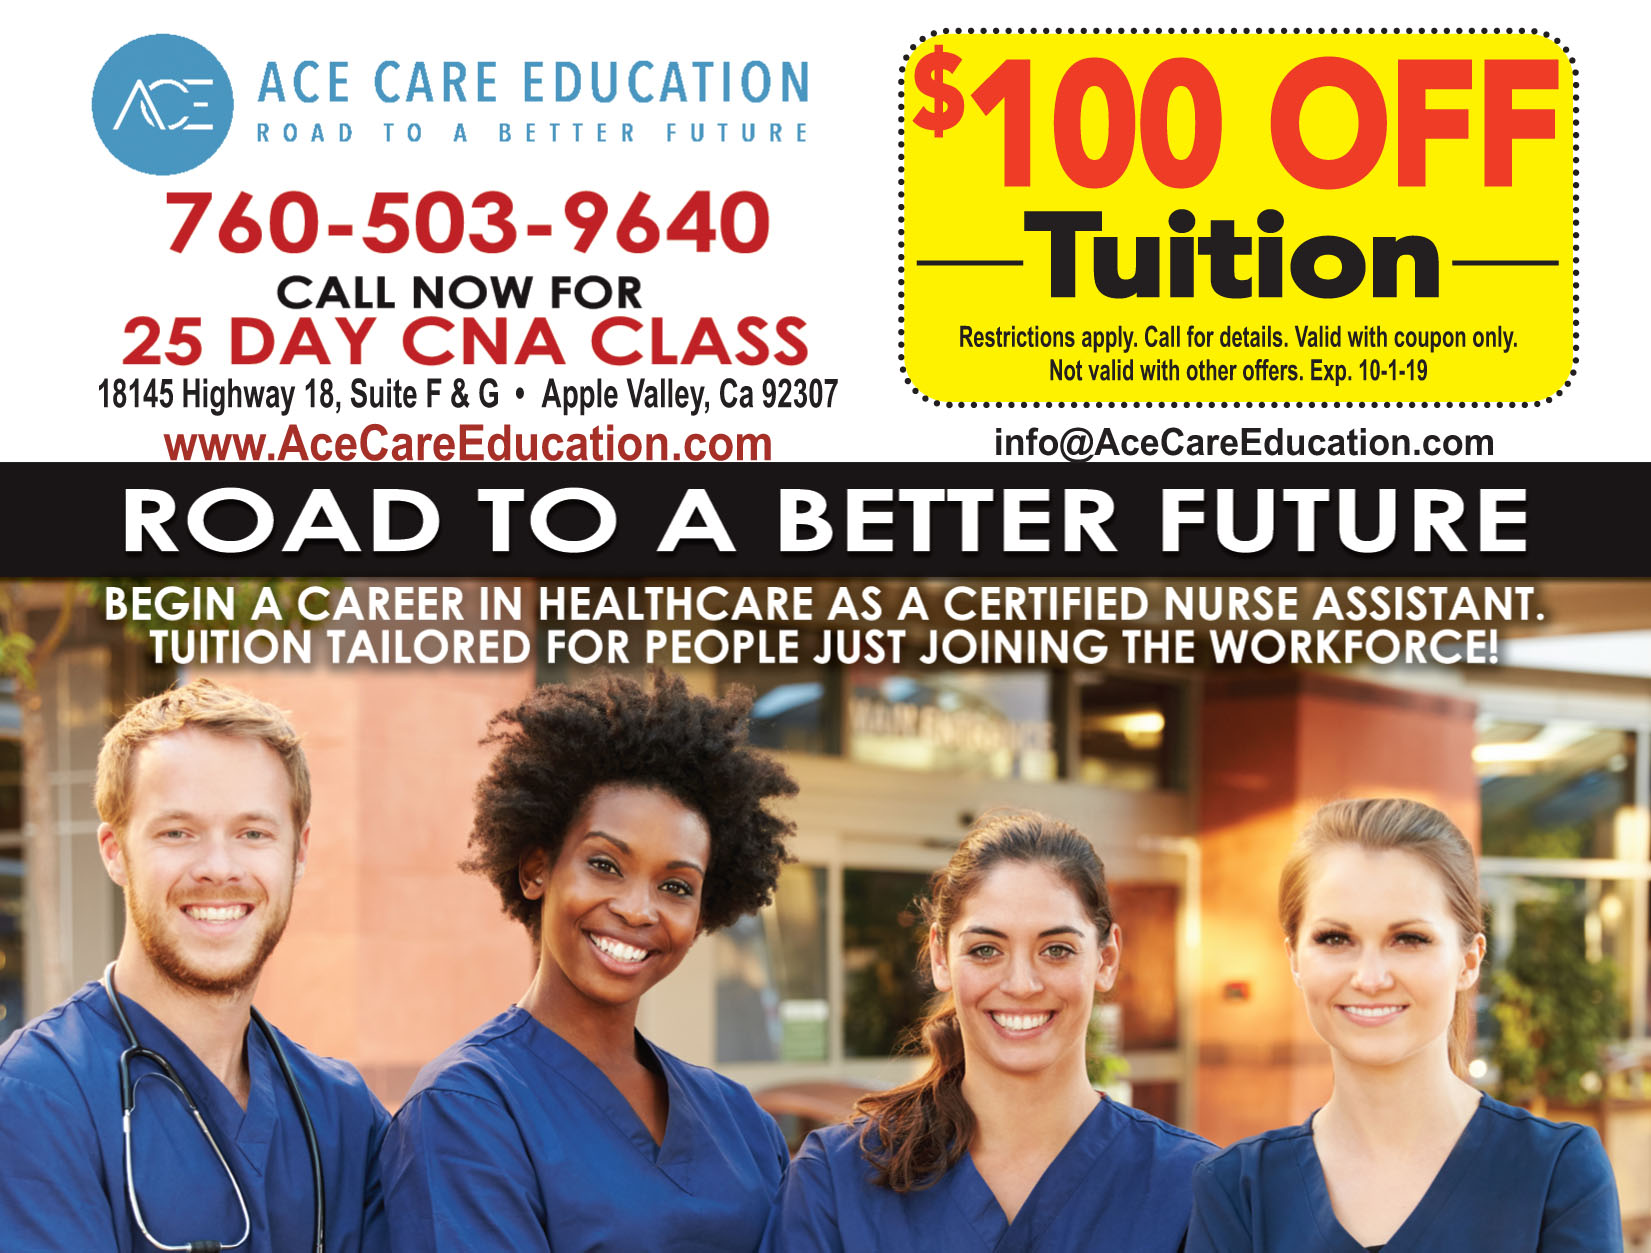 BEGIN YOUR CAREER IN NURSING  PROVIDING YOU WITH HEALTH CARE KNOWLEDGE FOR A LIFE LONG JOB  Go to Our Experience OUR EXPERIENCE  Ace Care Education (ACE) is a California based company with team members that have more than 2 decades of live experience with helping schools and students achieve their academic goals.    Go to Our Services OUR SERVICES  ACE services include: CNA Job Training, Vocational & Career Education, English For Nurses, Job Placement & Staffing    Go to Our Partners OUR PARTNERS  ACE provides career services to medical entities: Skilled Nursing Facility (SNF), Intermediate Care Facility (ICF), Hospital Transitional Care Facility, Nursing & Rehabilitation Center, Home Care & Hospice, Assisted Living Facility